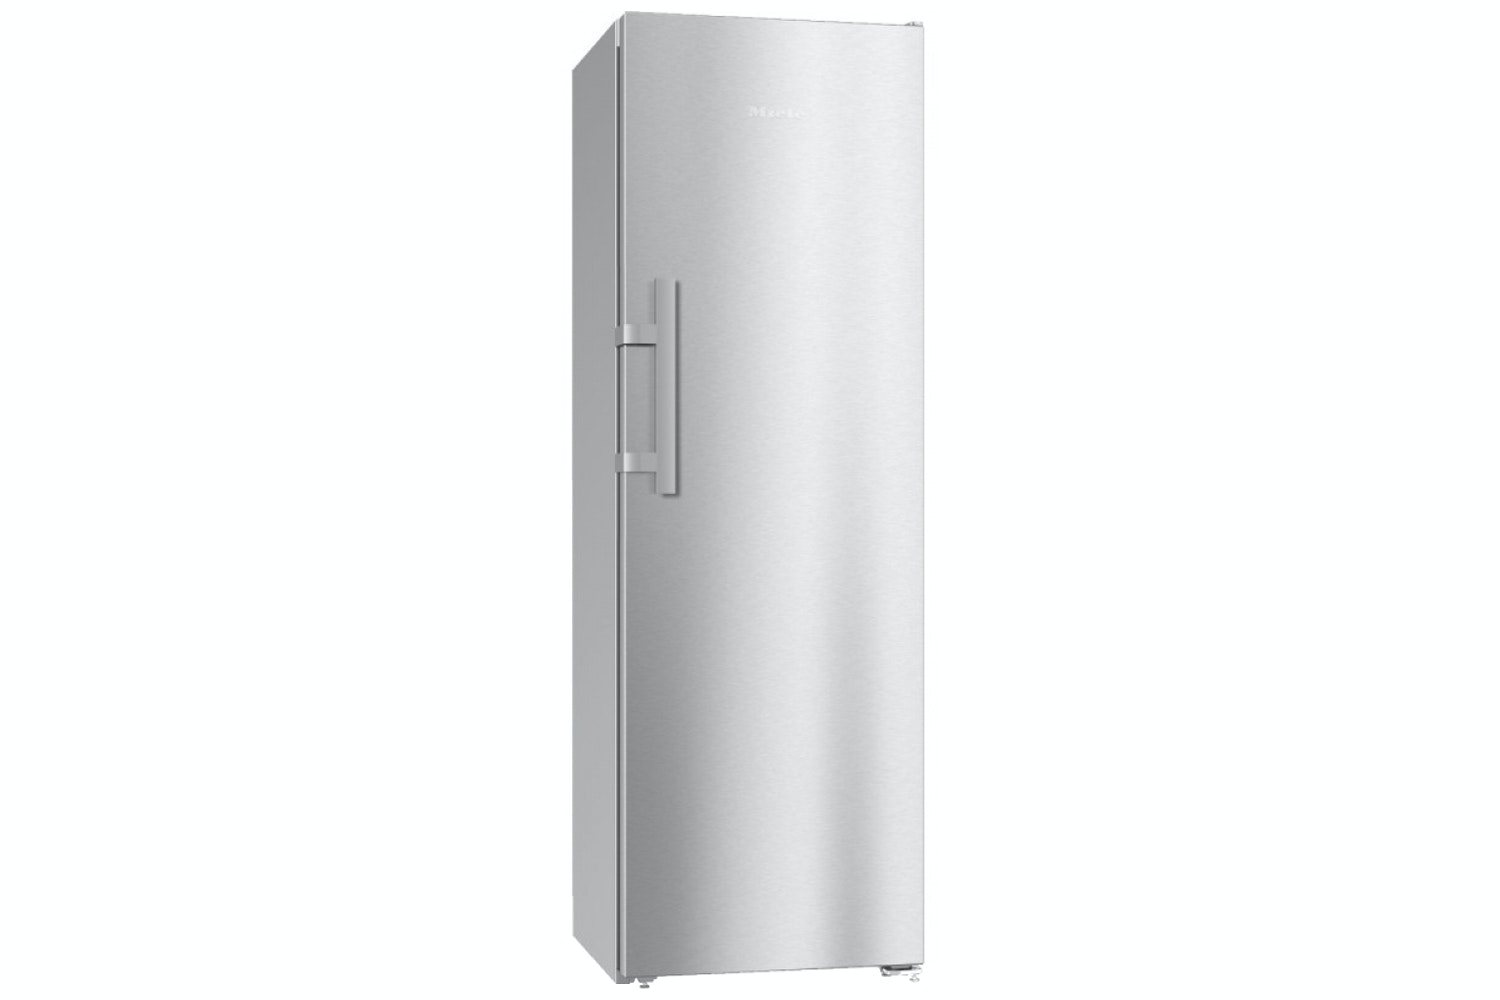 Miele FN 28262 edt/cs  Freestanding freezer   with Frost free and lever handle for convenient side-by-side combination